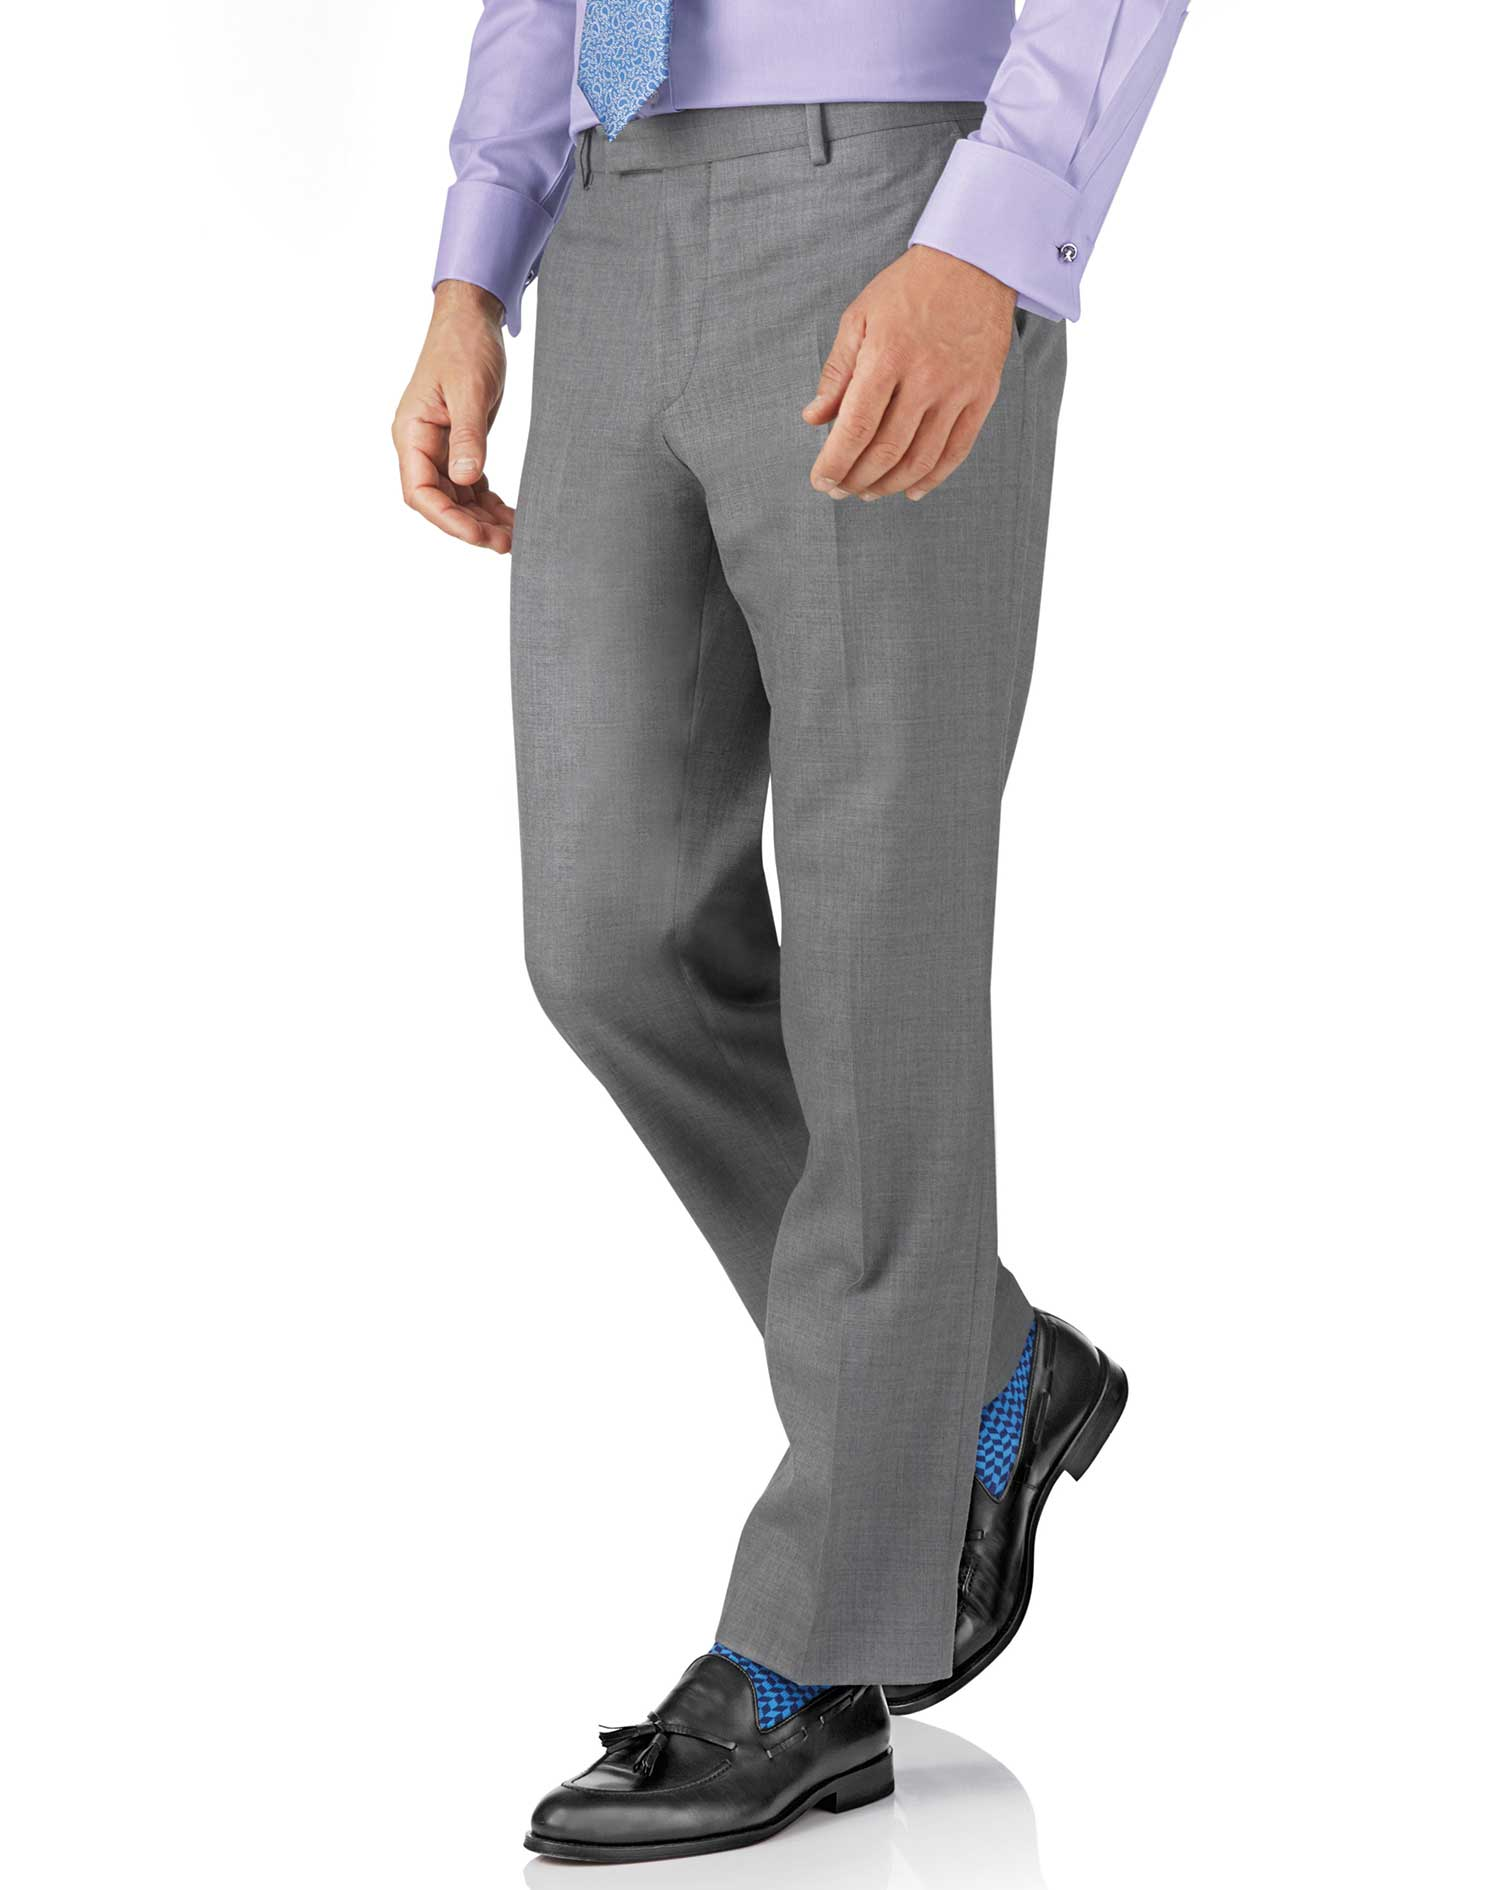 Silver classic fit British Panama luxury suit pants